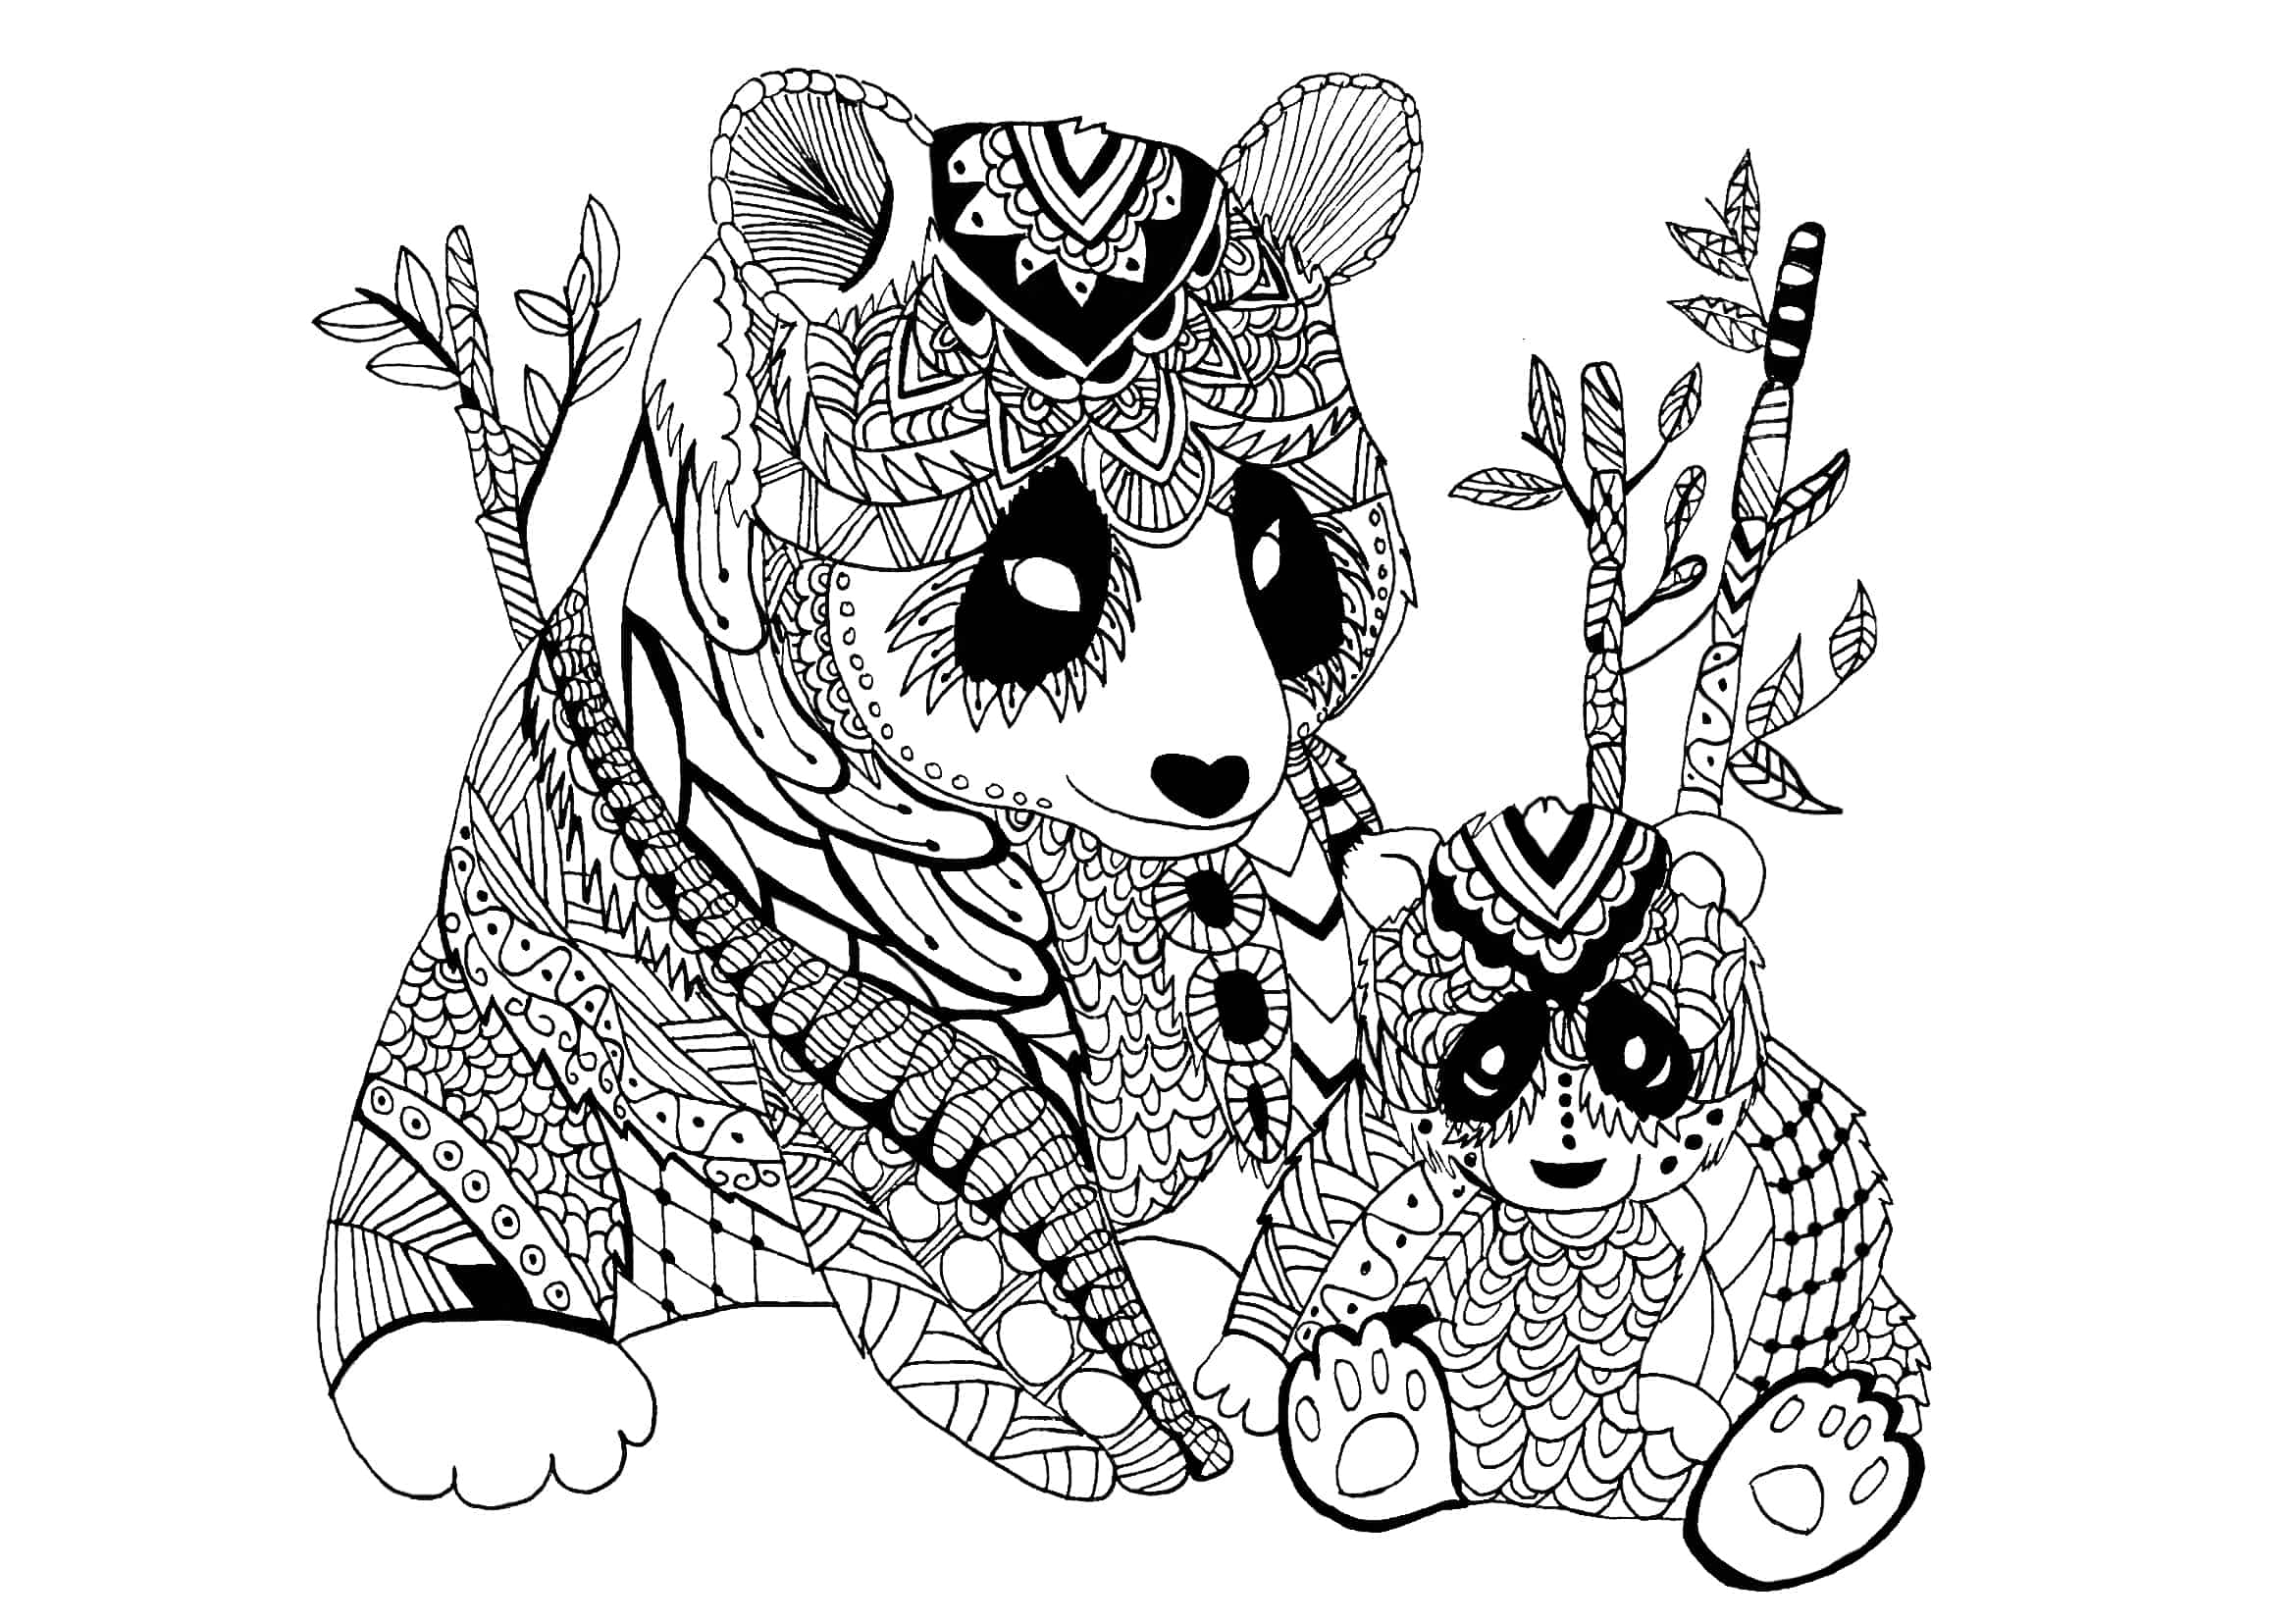 coloring pages panda pandas to download for free pandas kids coloring pages coloring panda pages